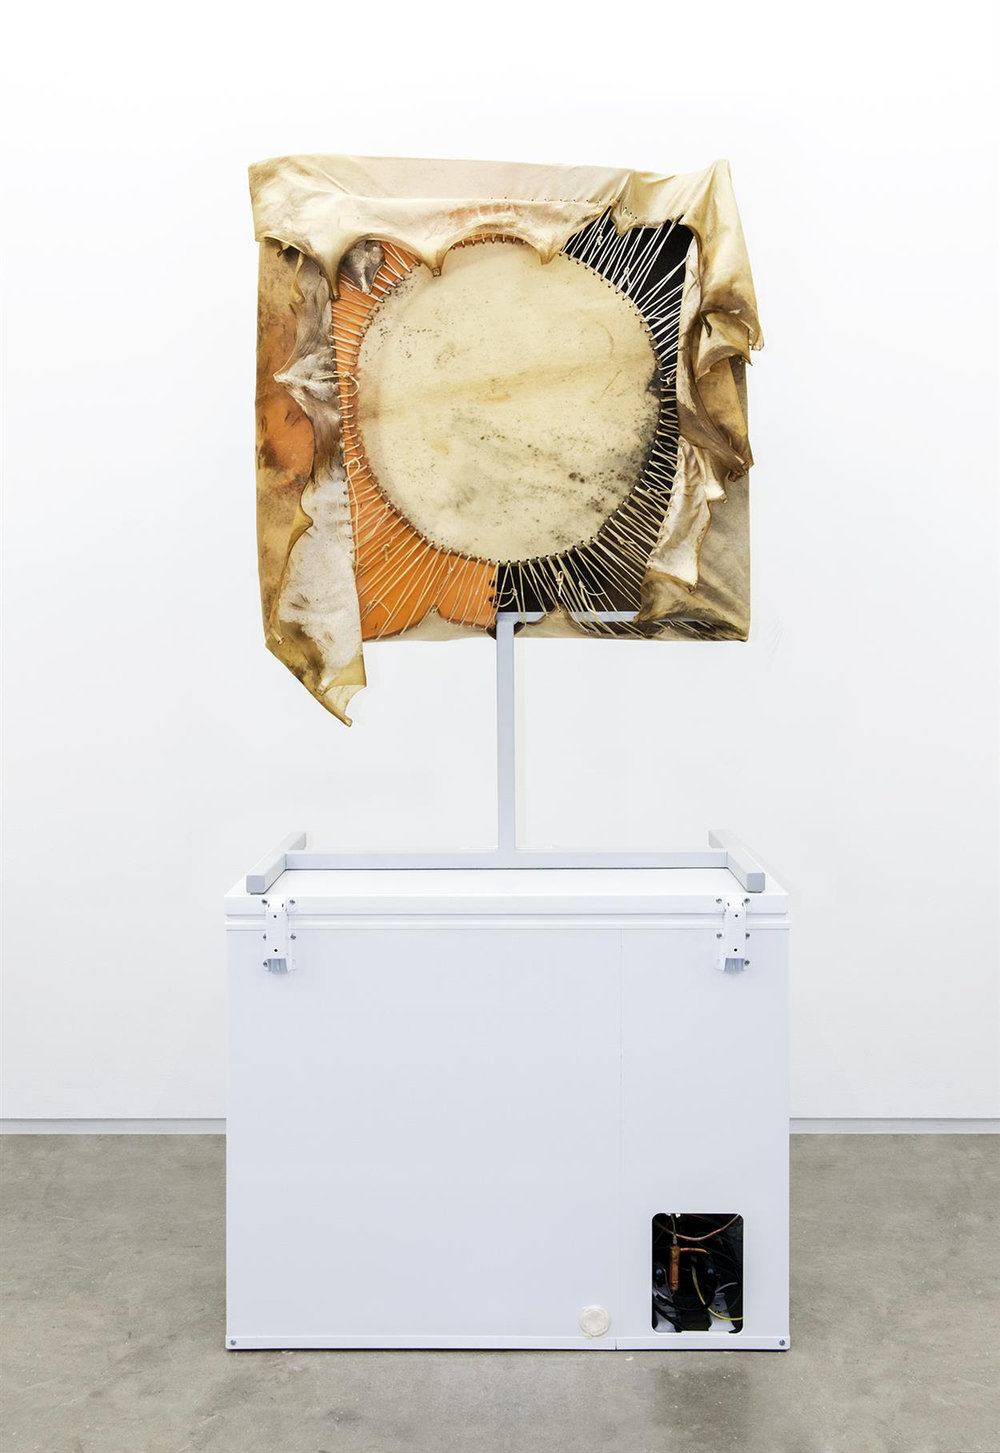 Brian Jungen,  Moon,  2013, Steel, deer hide, Trabant fenders, Freezer, 101 5/8 x 51 1/8 x 28 inches. Courtesy Catriona Jeffries.